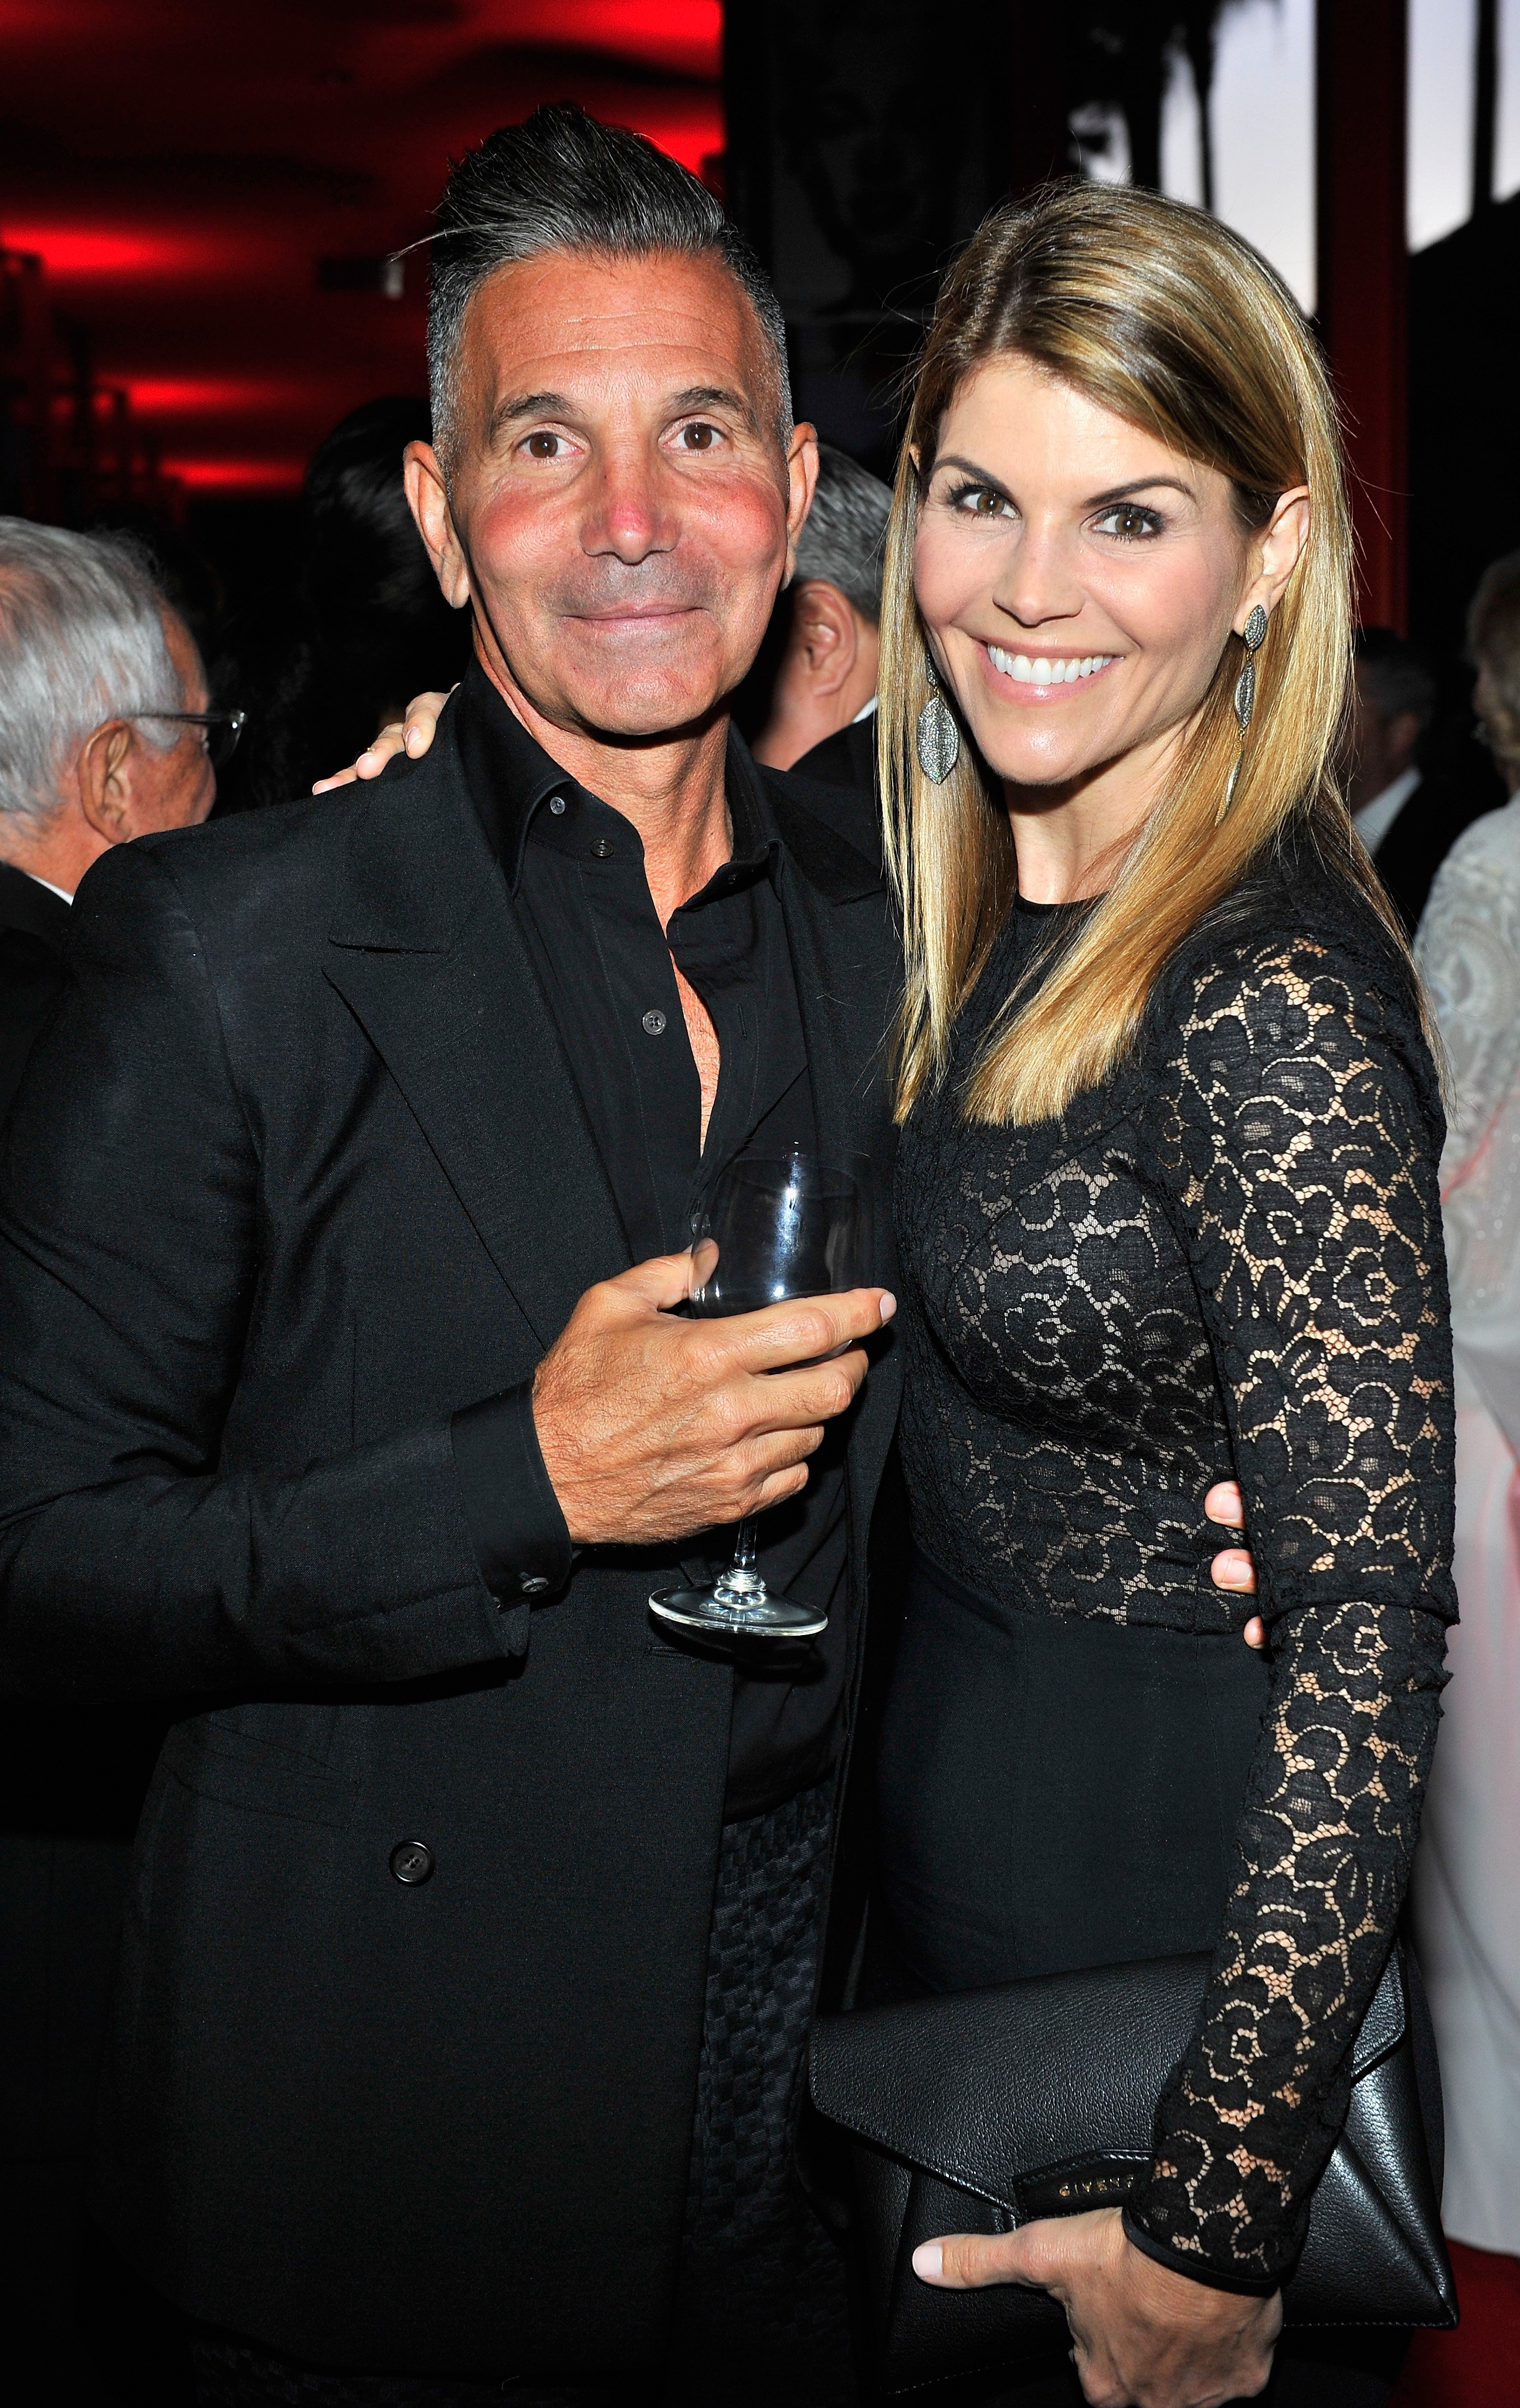 Lori Loughlin with her husband Mossimo Giannulli at the LACMA's 50th Anniversary Gala | Source: Getty Images